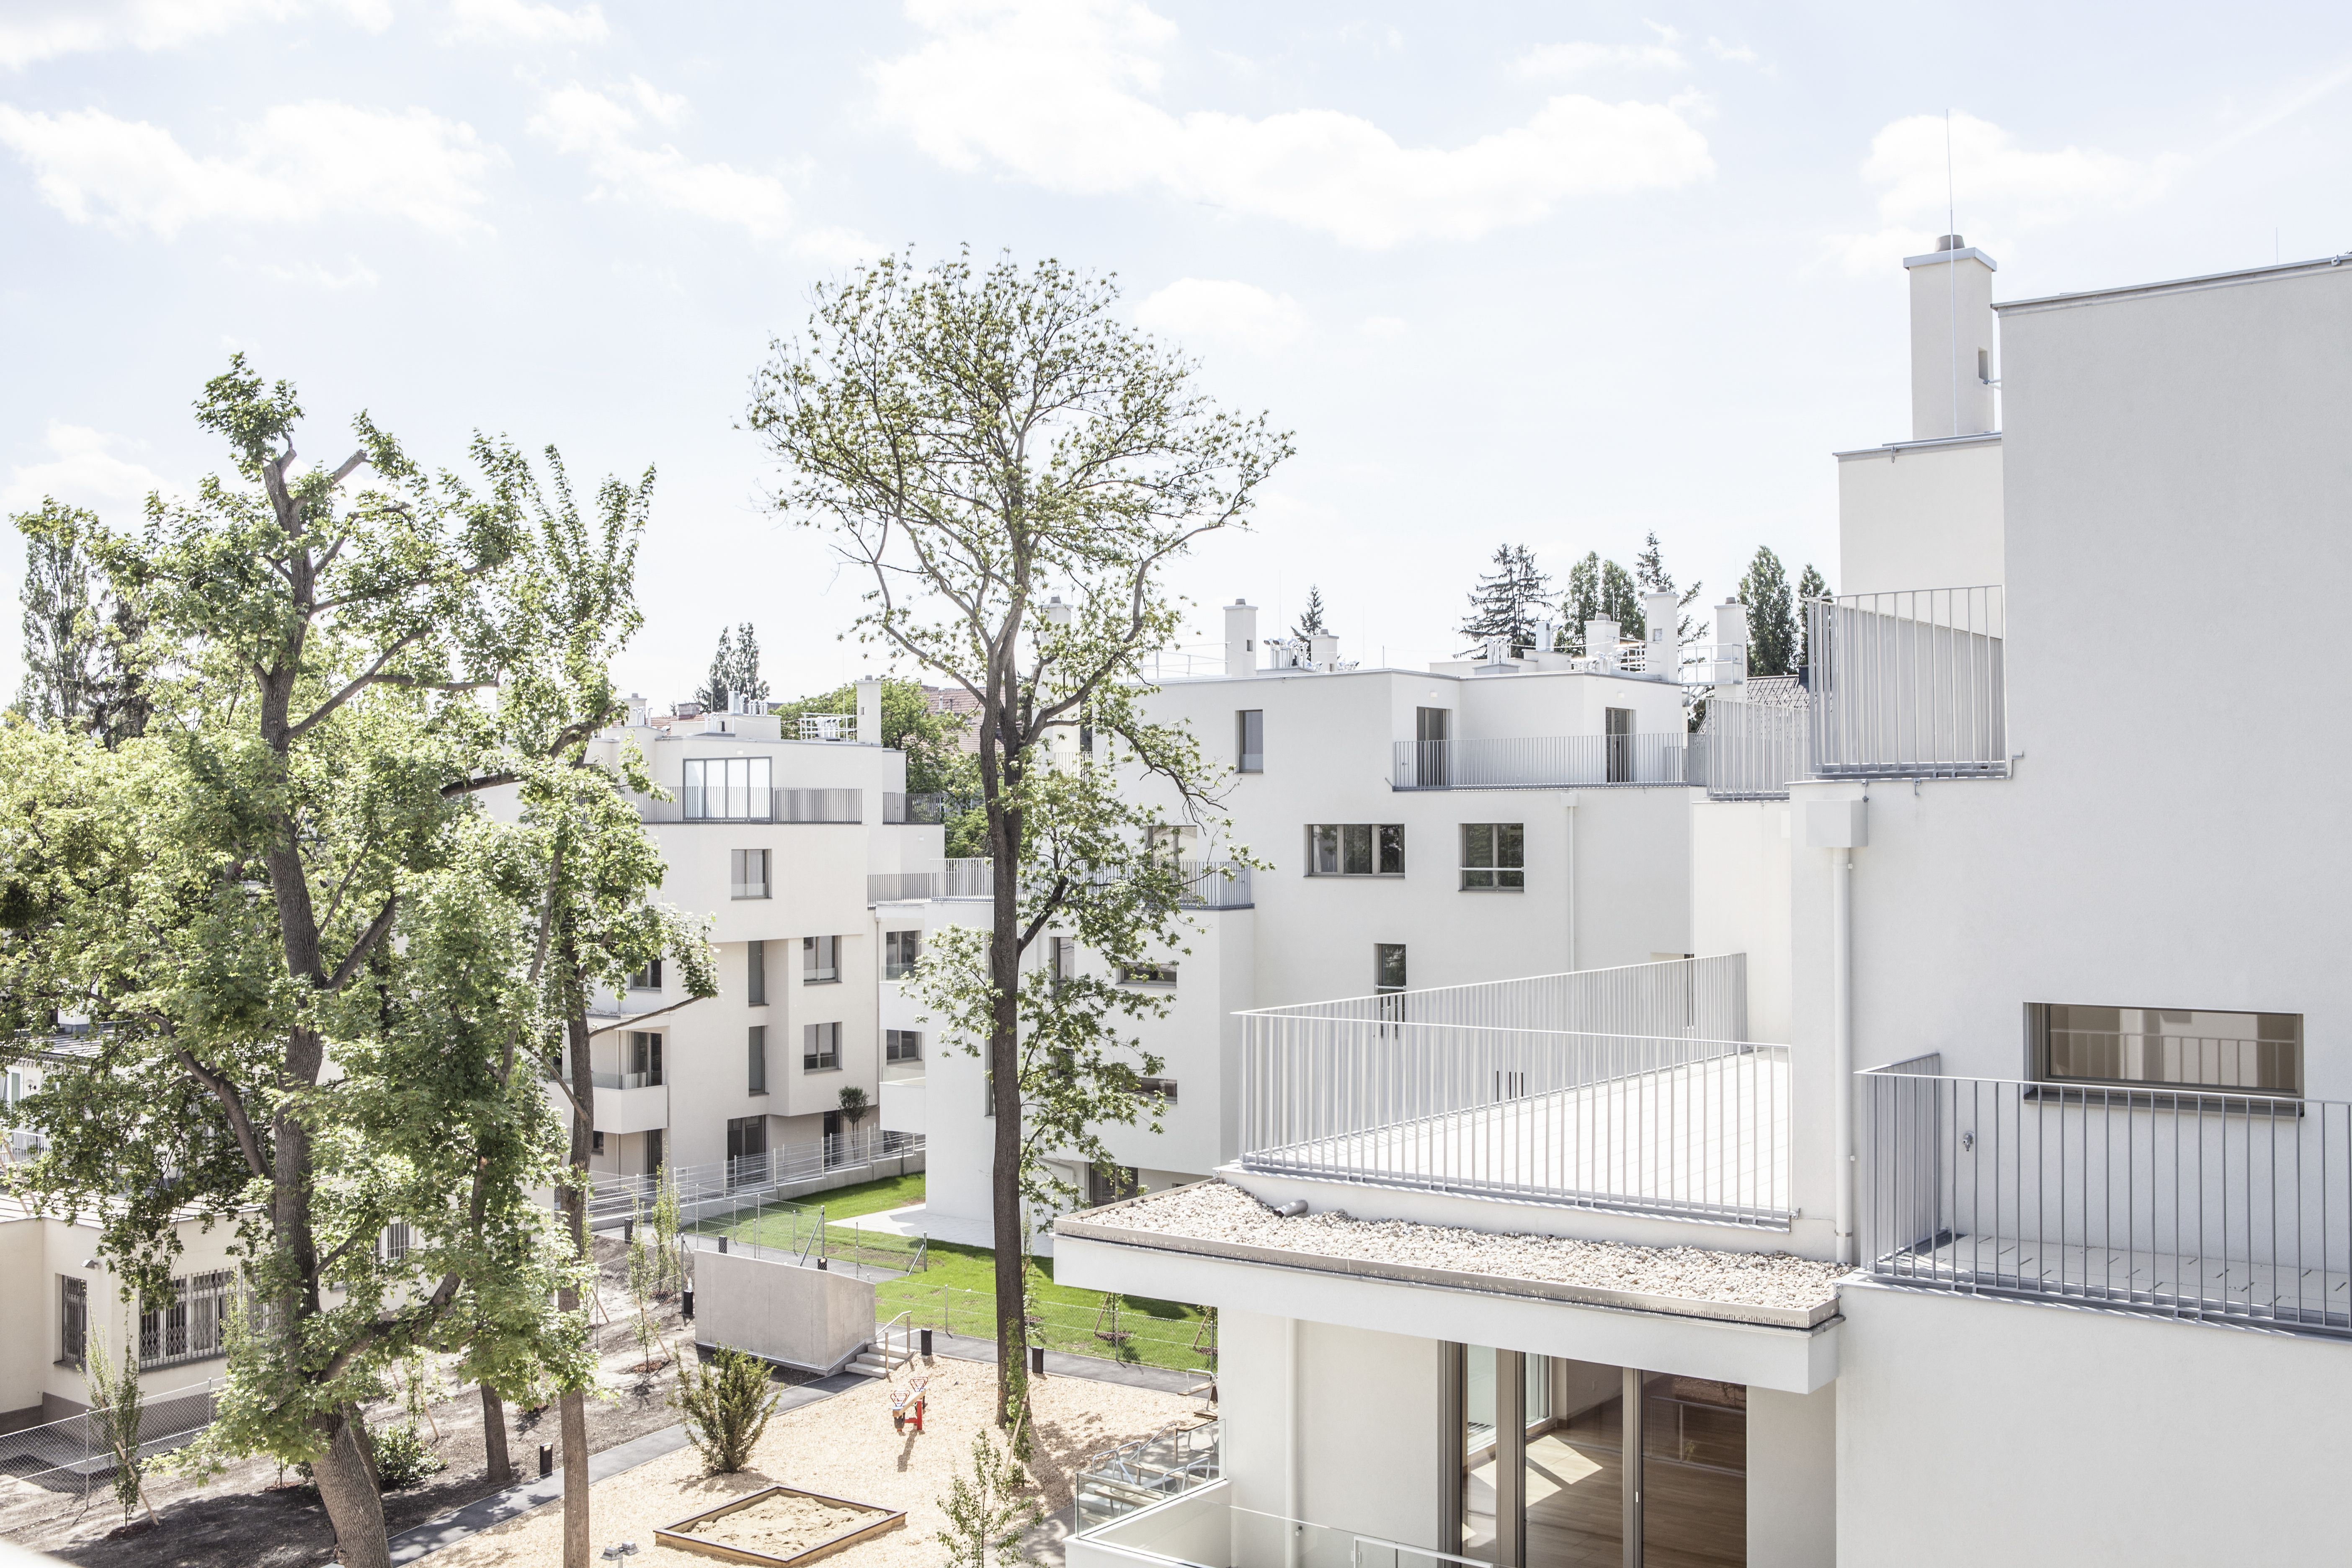 Neue Villen XIX, 1190 Wien - Real estate project development